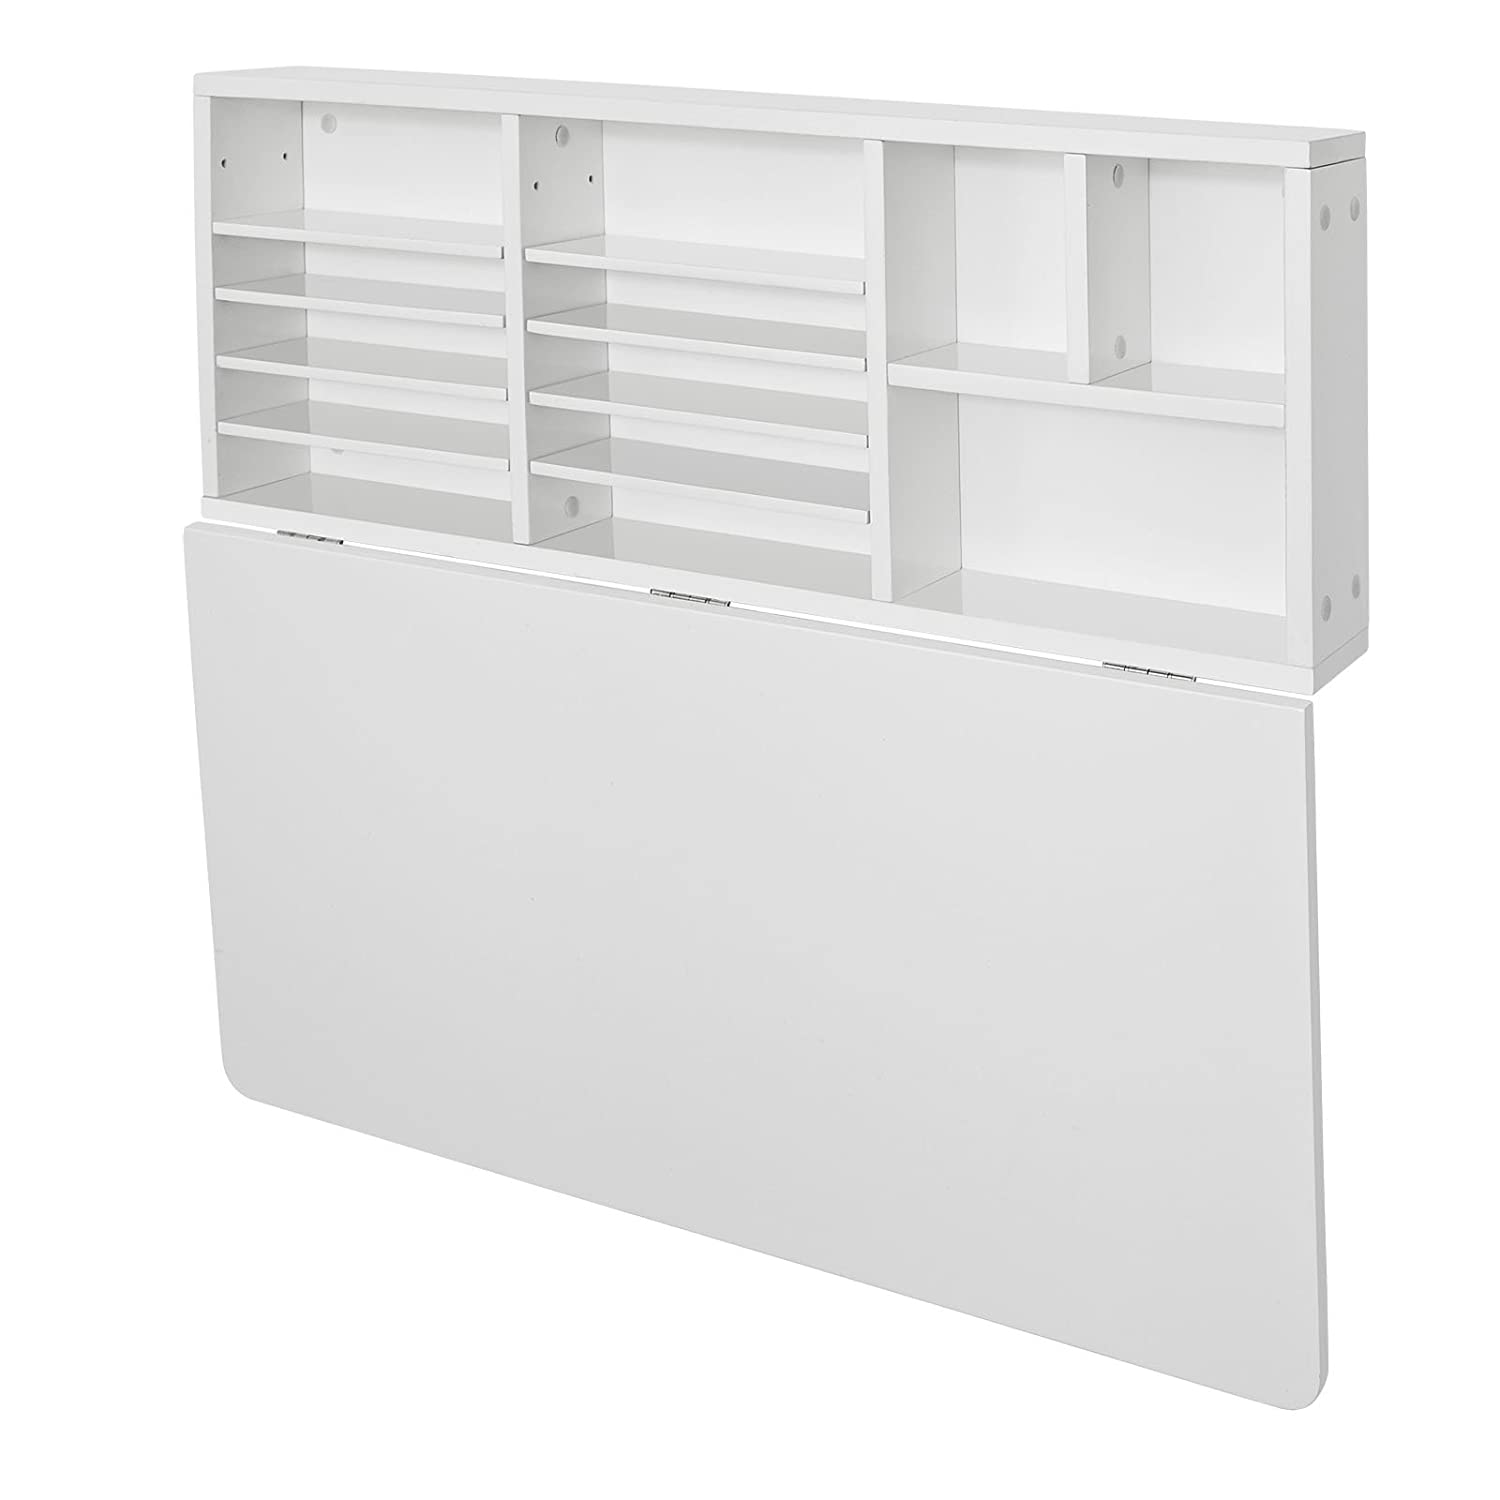 SoBuy FWT07 W, Folding Wooden Wall Mounted Drop Leaf Table Desk Integrated  With Storage Shelves, L90xW60cm, White: Amazon.co.uk: Kitchen U0026 Home